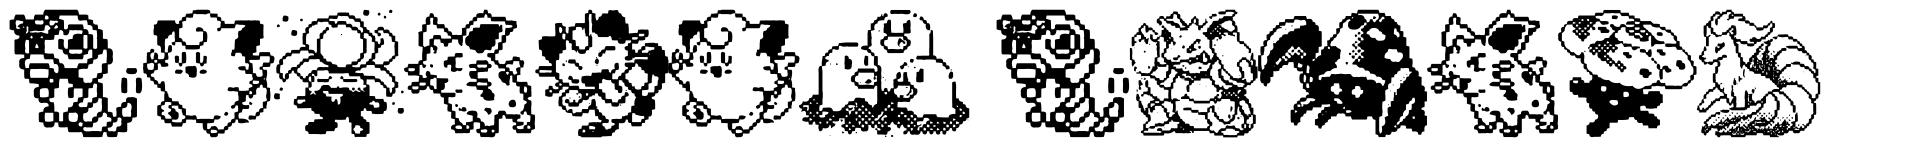 Pokemon Pixels